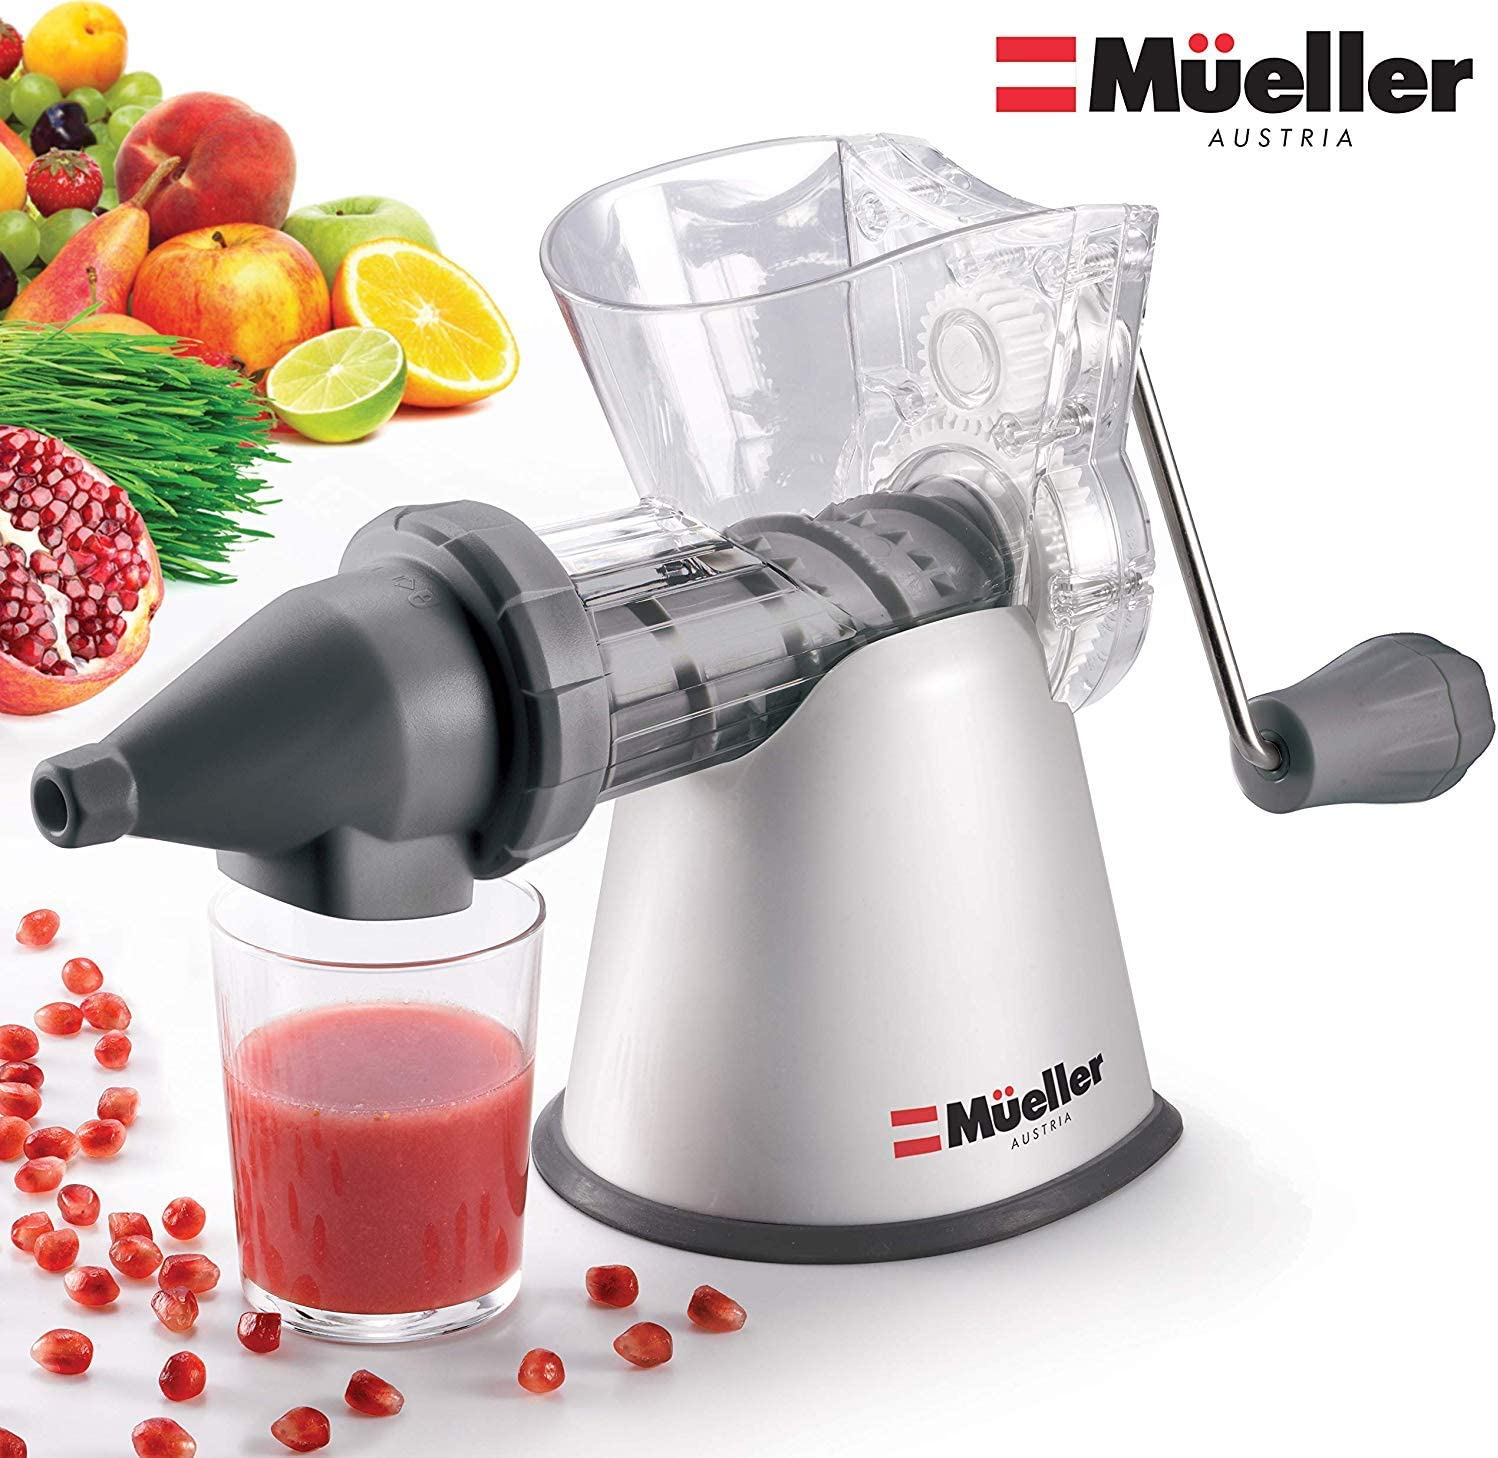 Mueller Elite Masticating Slow Fruit/Vegetable Wheatgrass Juicer